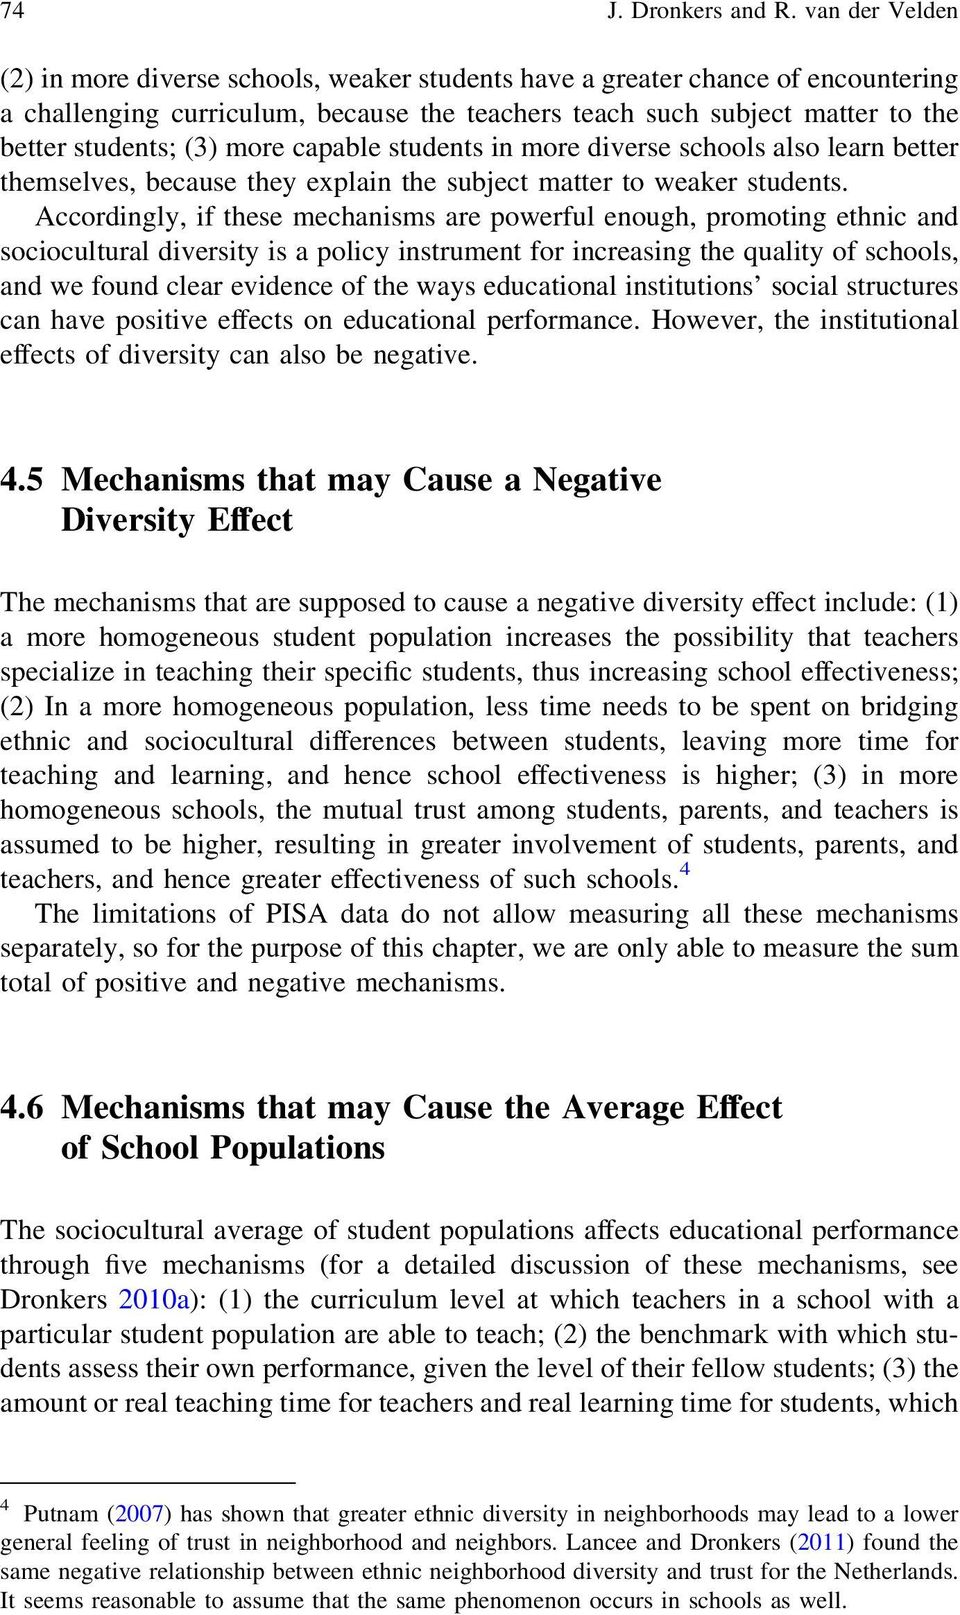 more capable students in more diverse schools also learn better themselves, because they explain the subject matter to weaker students.